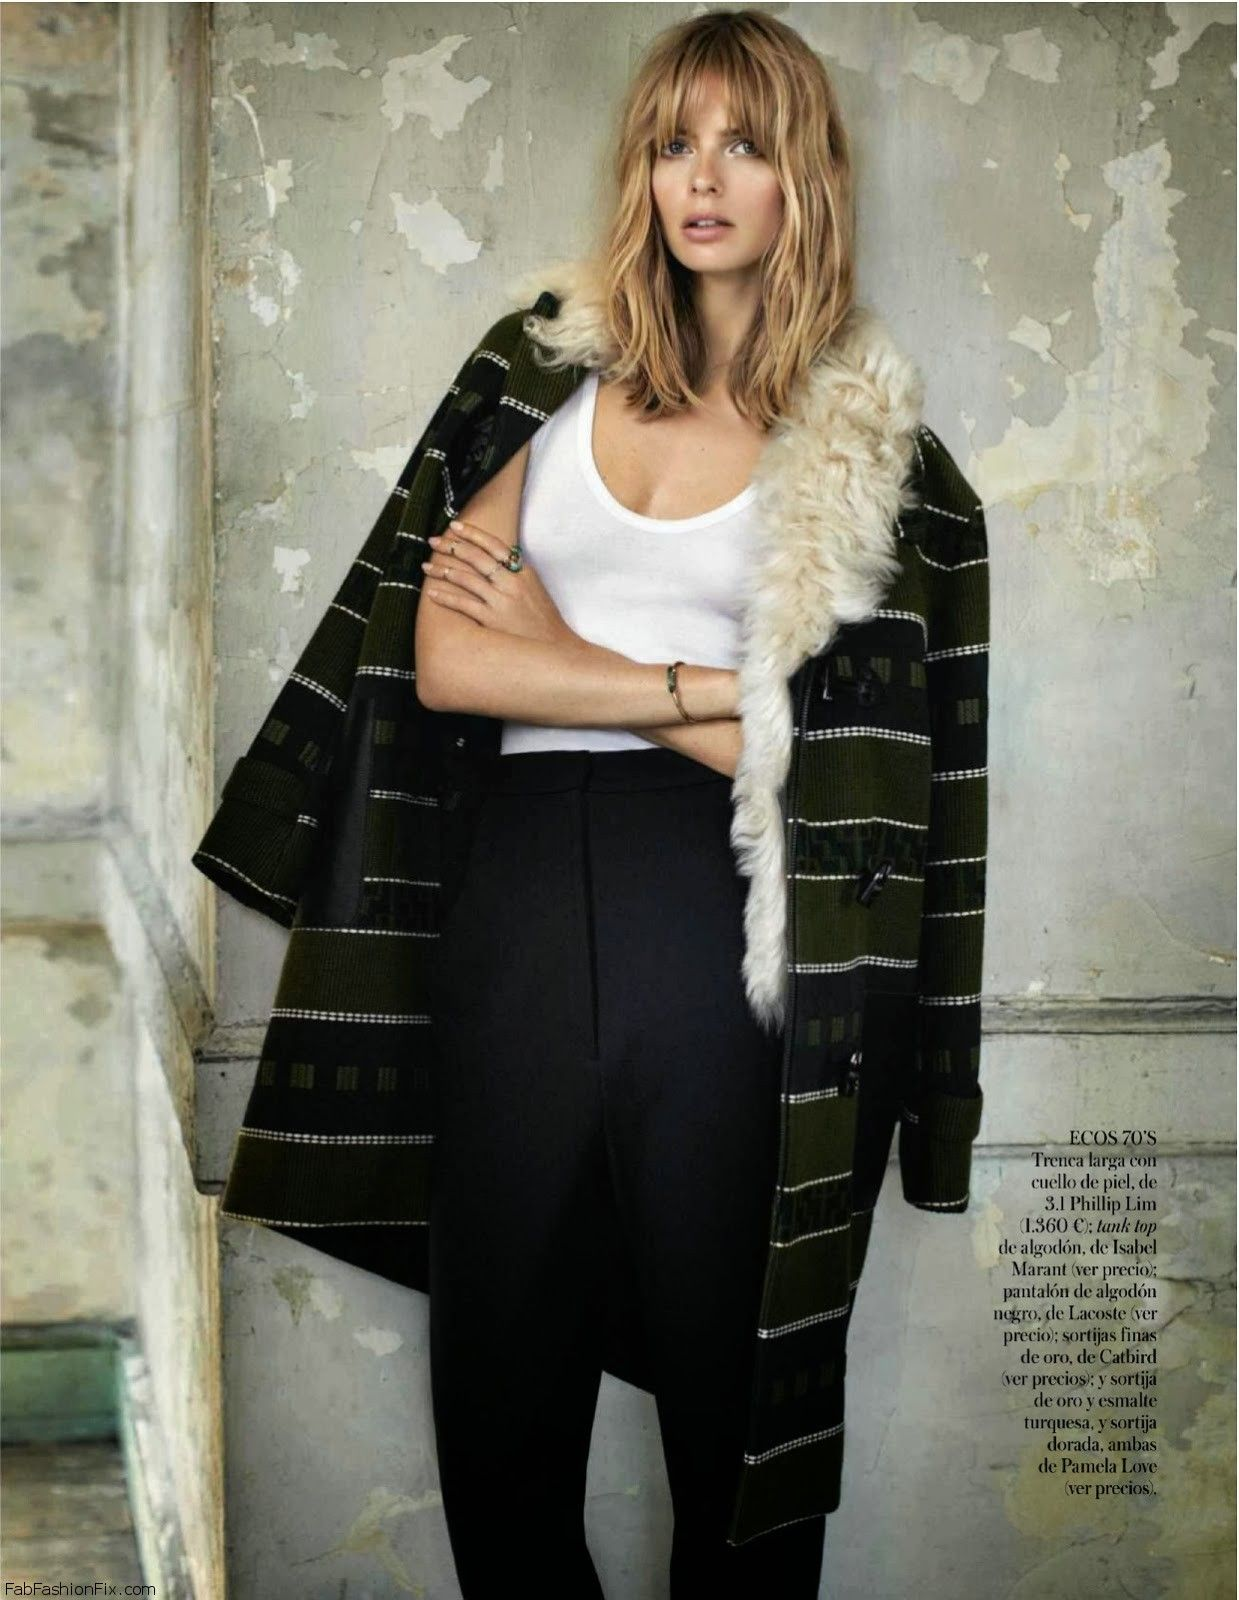 Vogue_Spain_-_Noviembre_2013 (dragged) 6 (1)